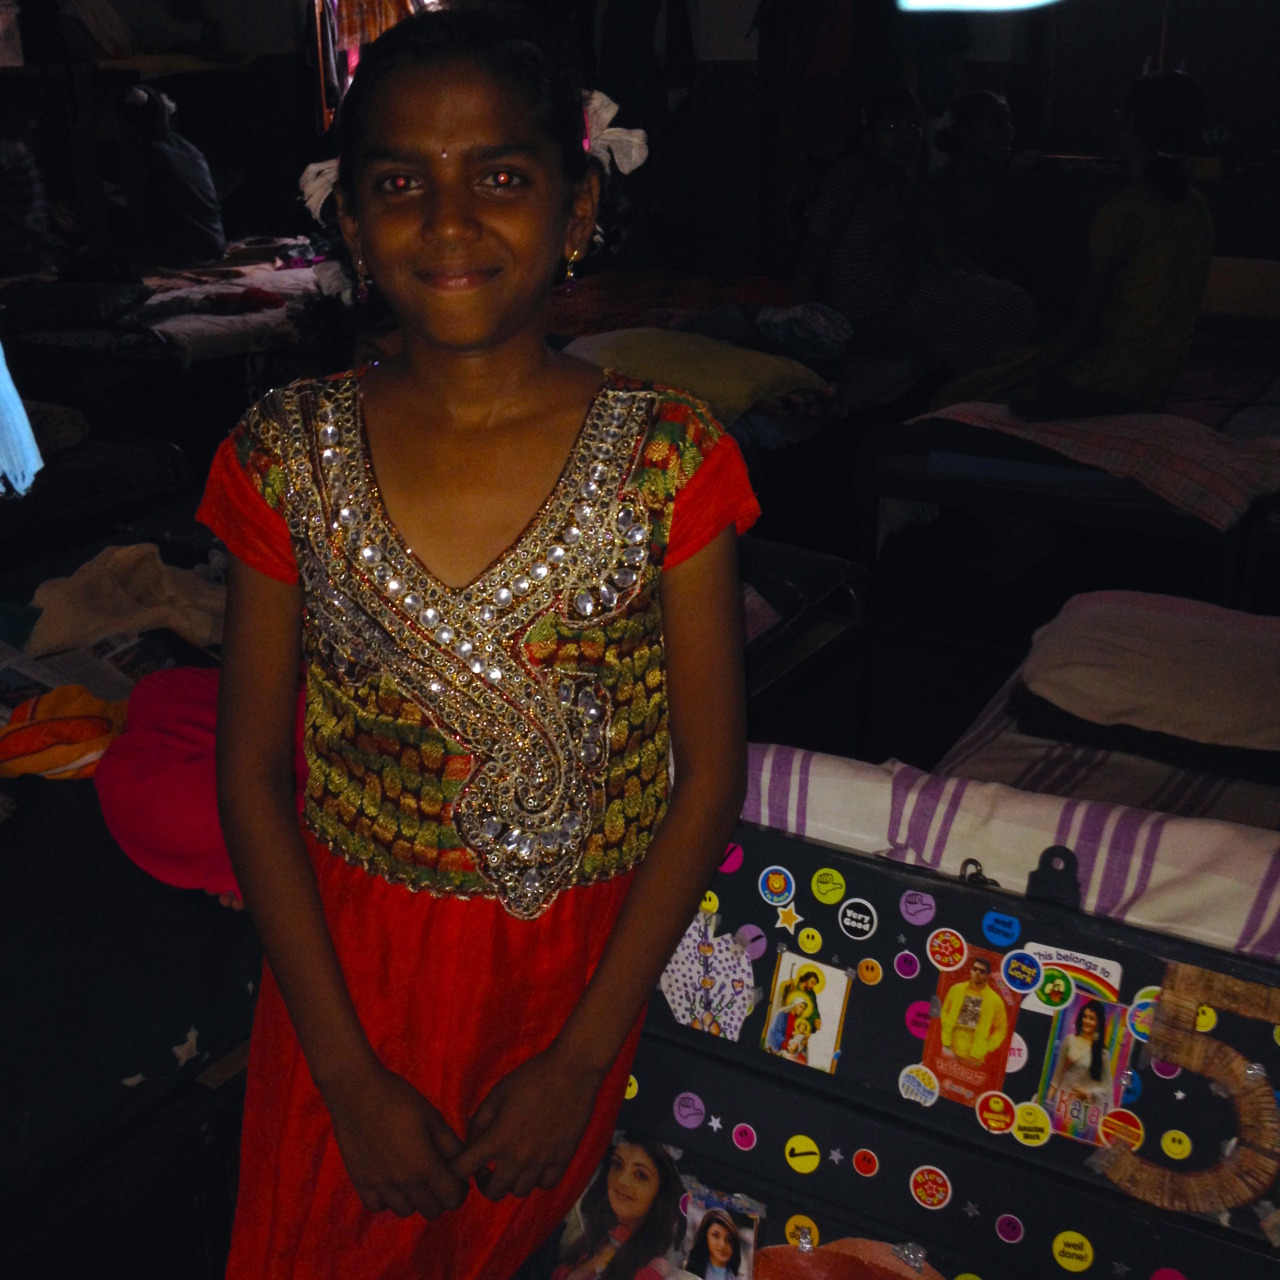 My friend Swapna, an HIV positive orphan. This tiny cupboard holds everything she owns